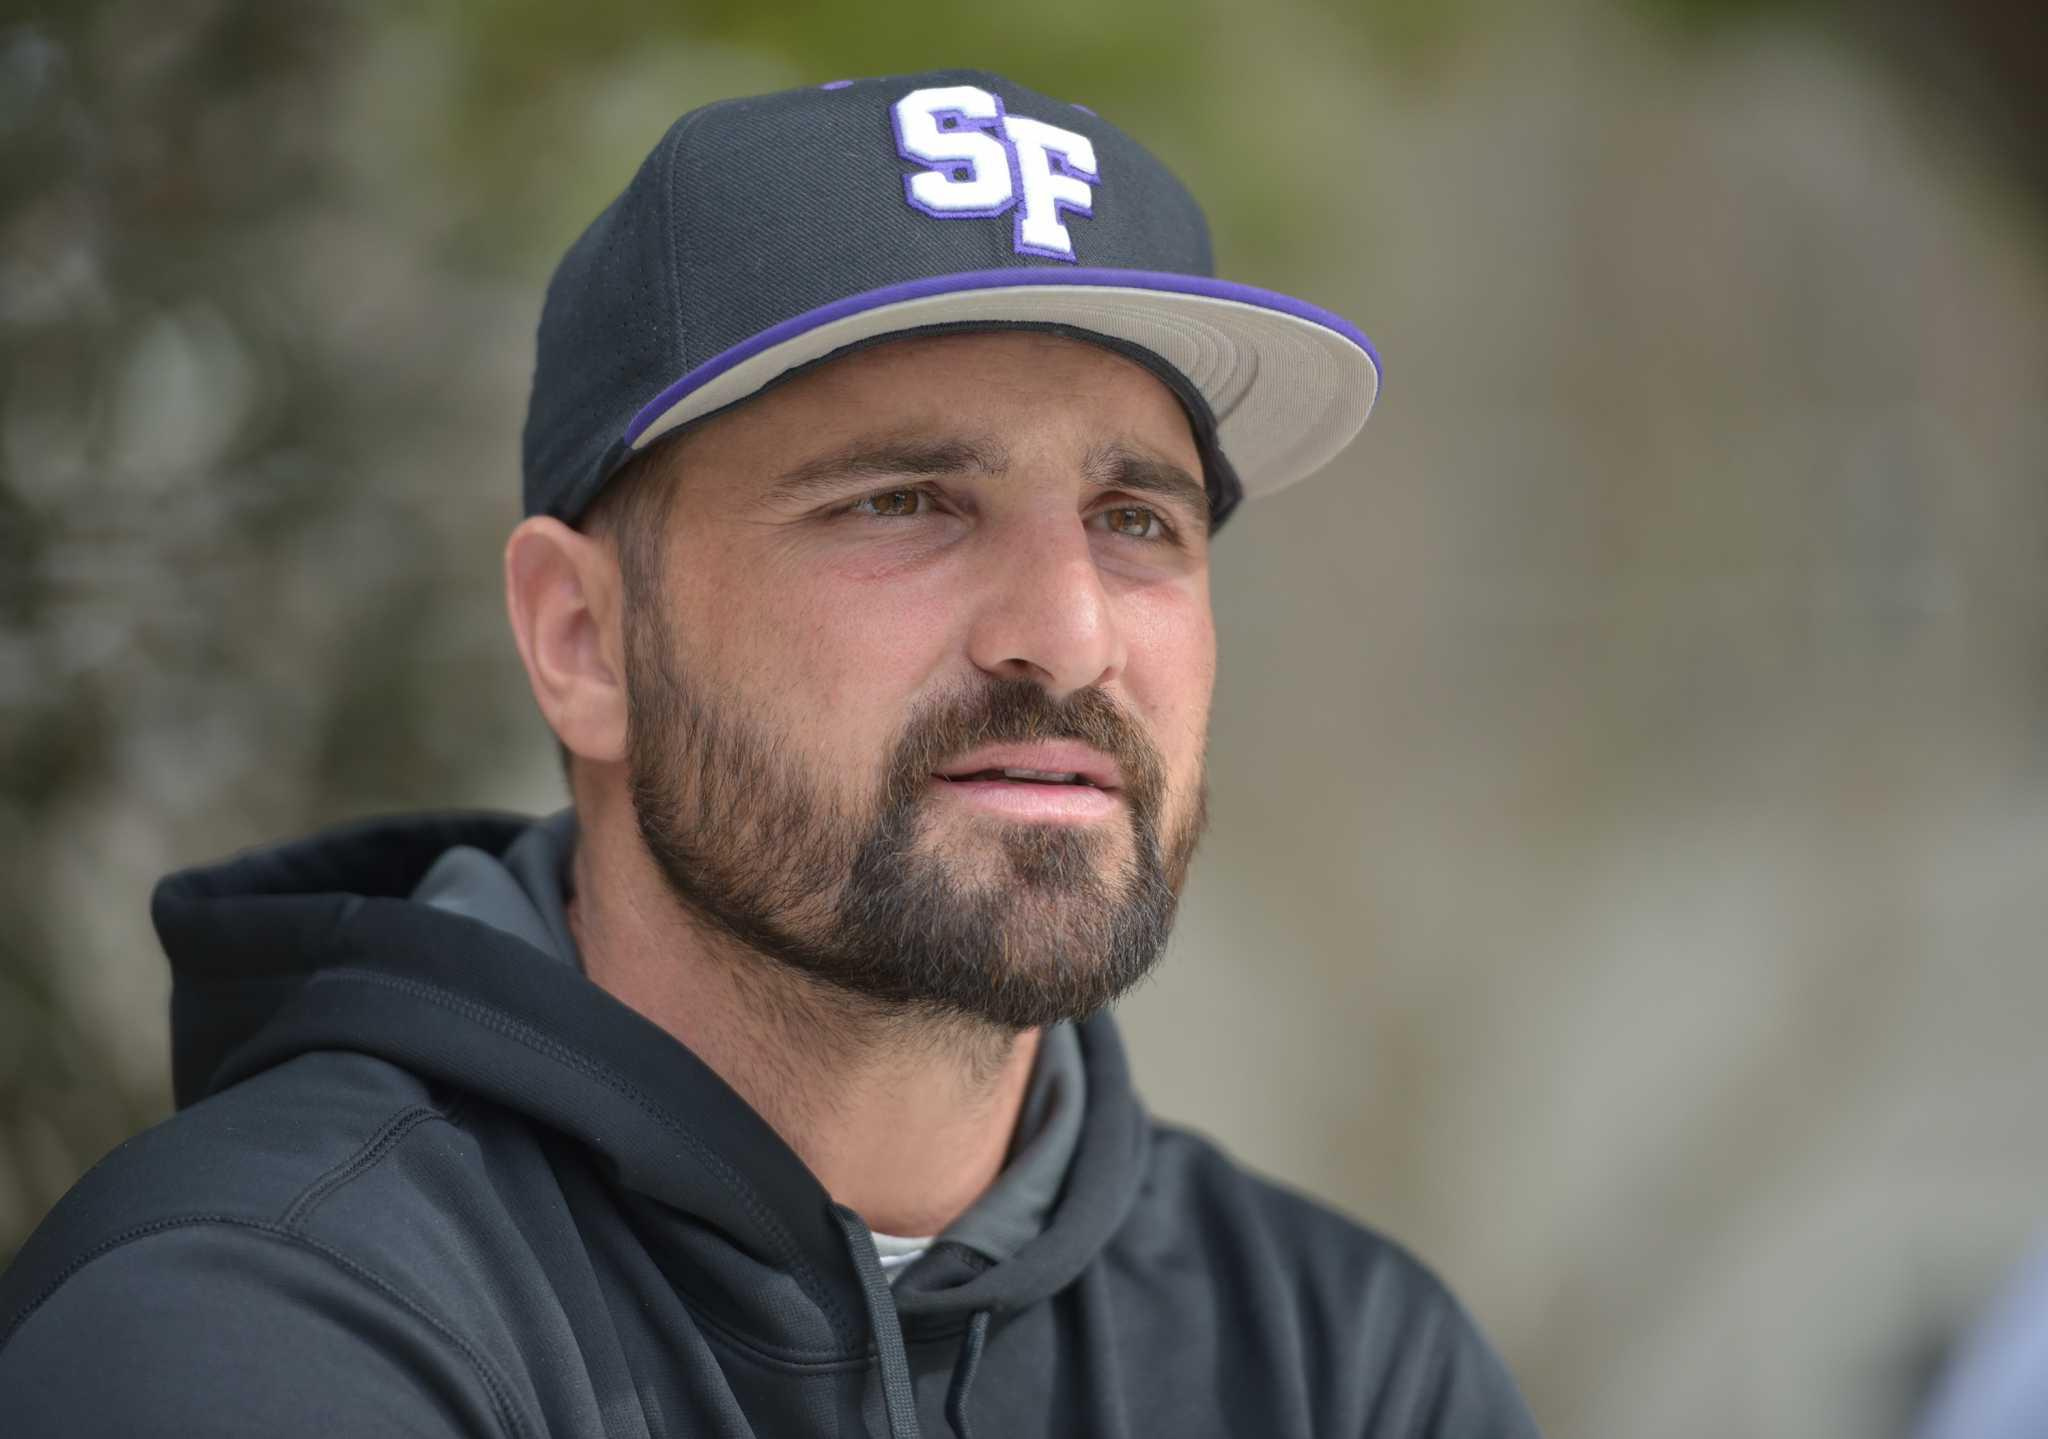 SF State assistant baseball coach Tyler LaTorre talks to Golden Gate Xpress reporter during an interview on SF State campus Thursday, Feb.11. (Qing Huang / Xpress)